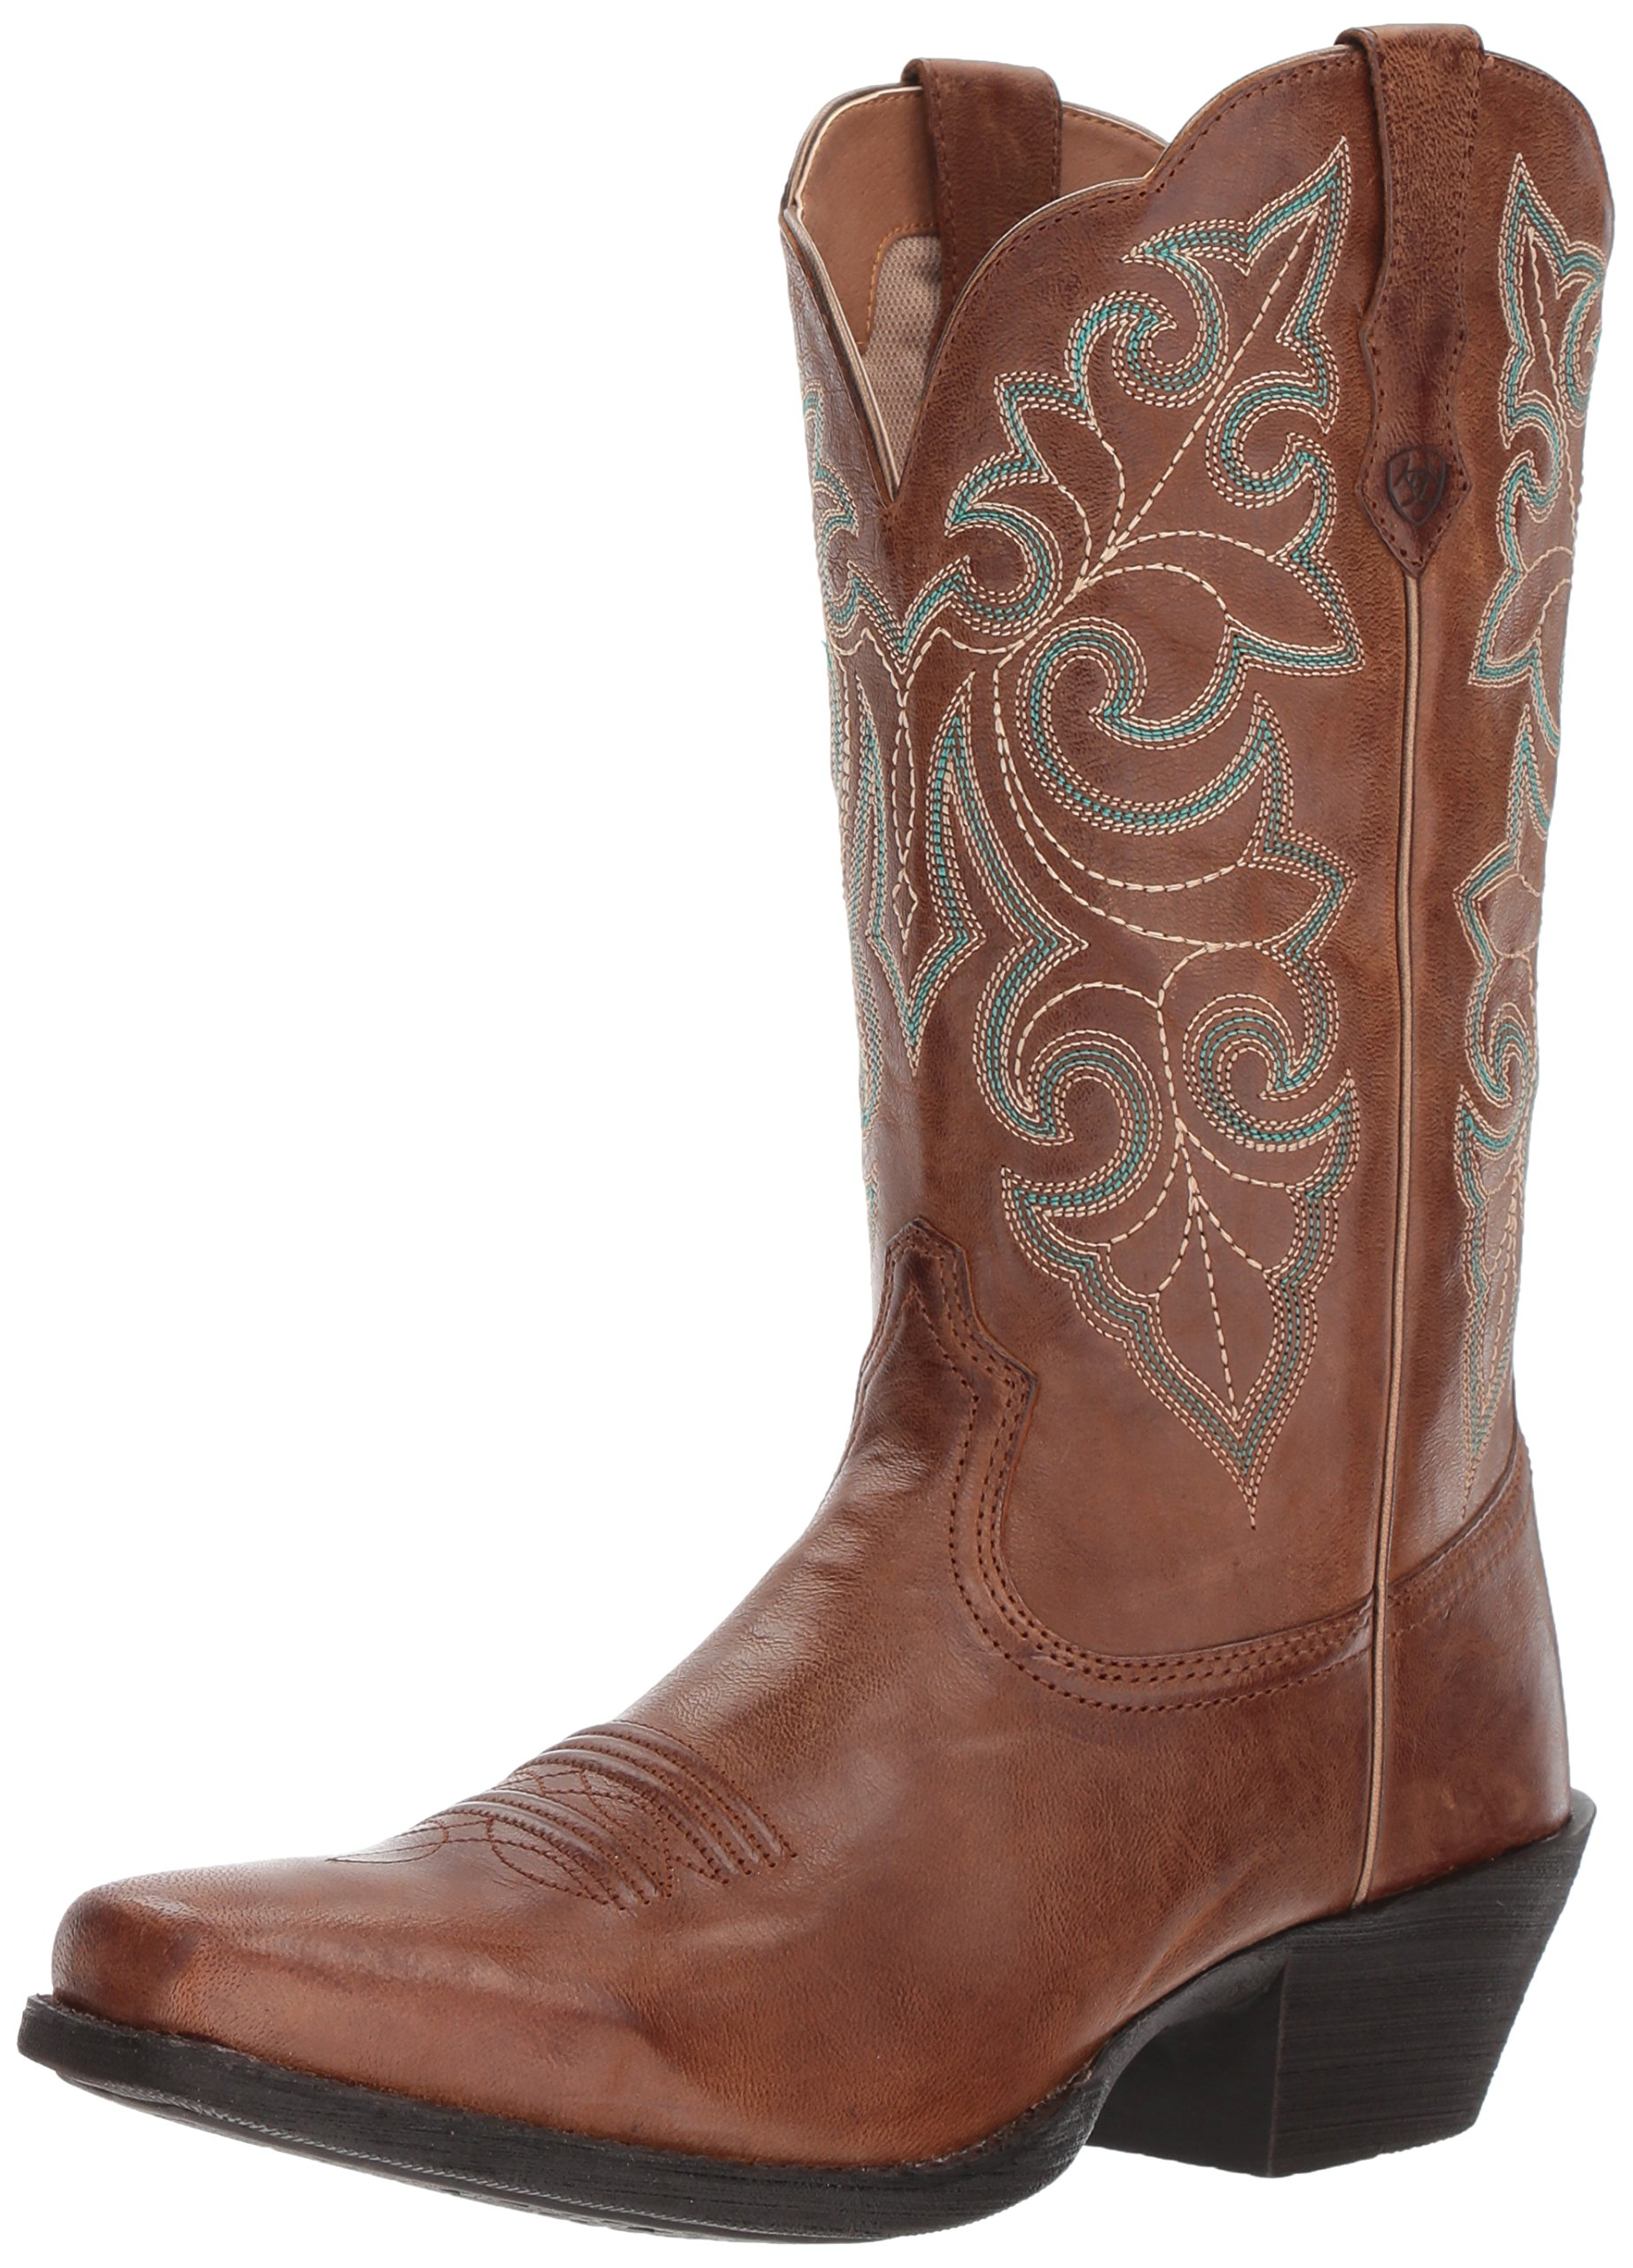 Ariat Women's Women's Round up Square Toe Western Boot, Wood, 6 B US